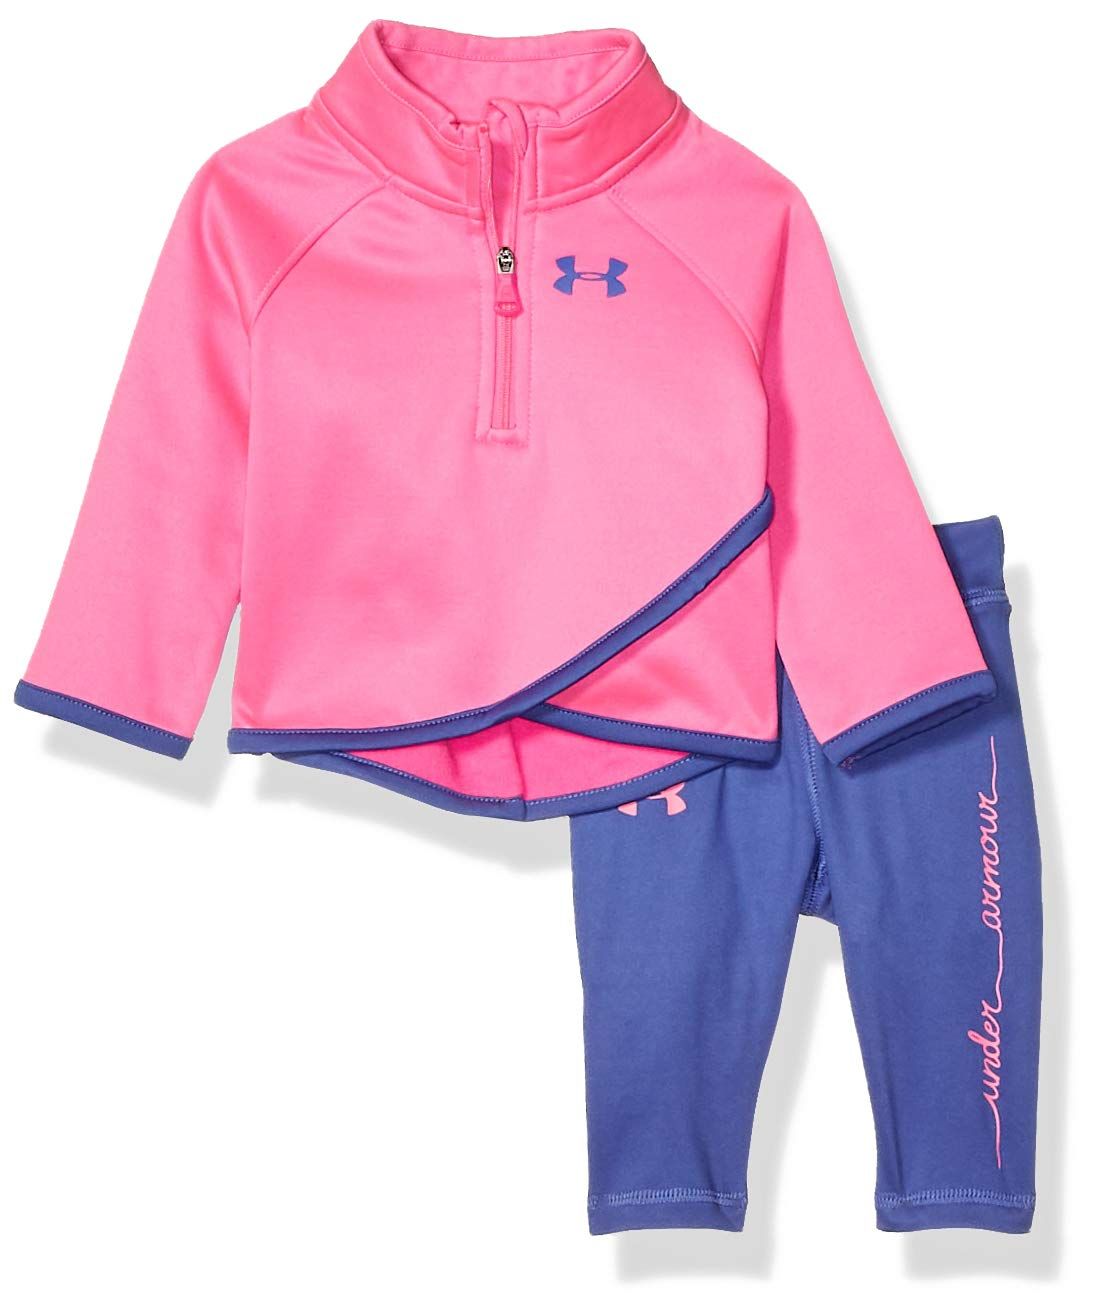 Under Armour Baby Girls Long Sleeve Tricot and Legging Set, Chaos f19, 12M by Under Armour